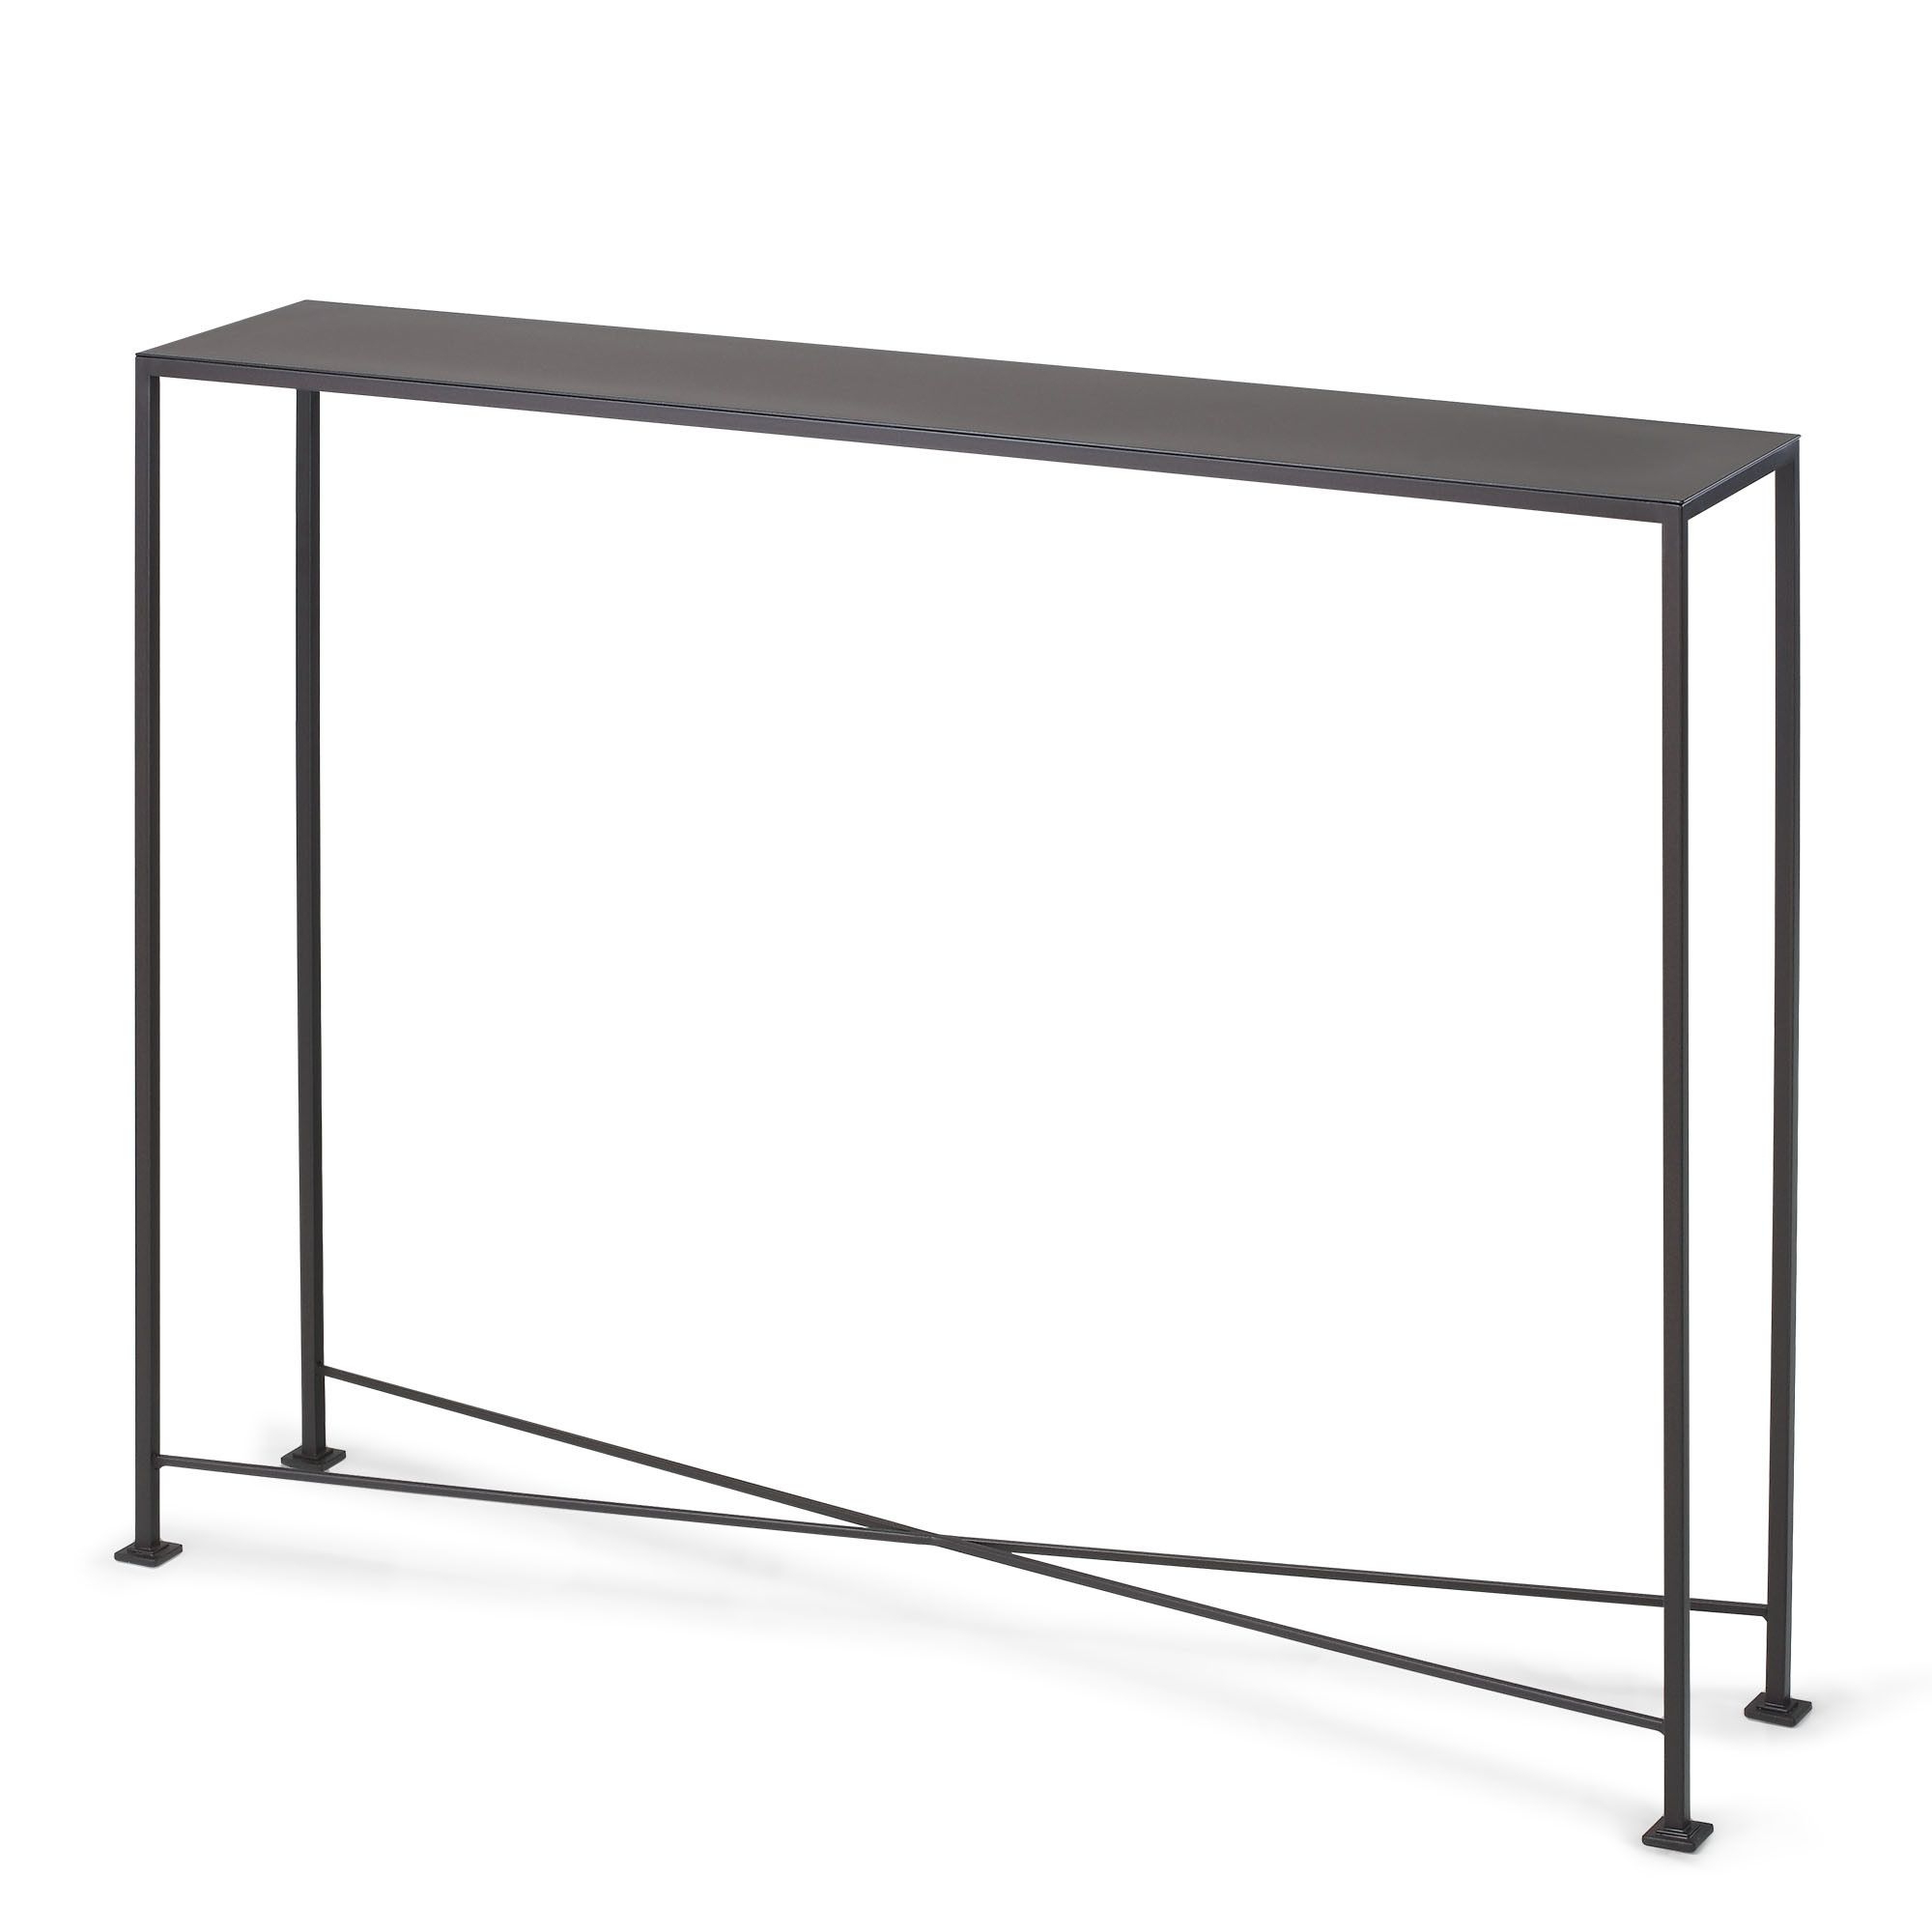 Diversey Metal Console Table | Console Tables, Consoles And Metals Regarding Silviano 60 Inch Iron Console Tables (View 10 of 20)